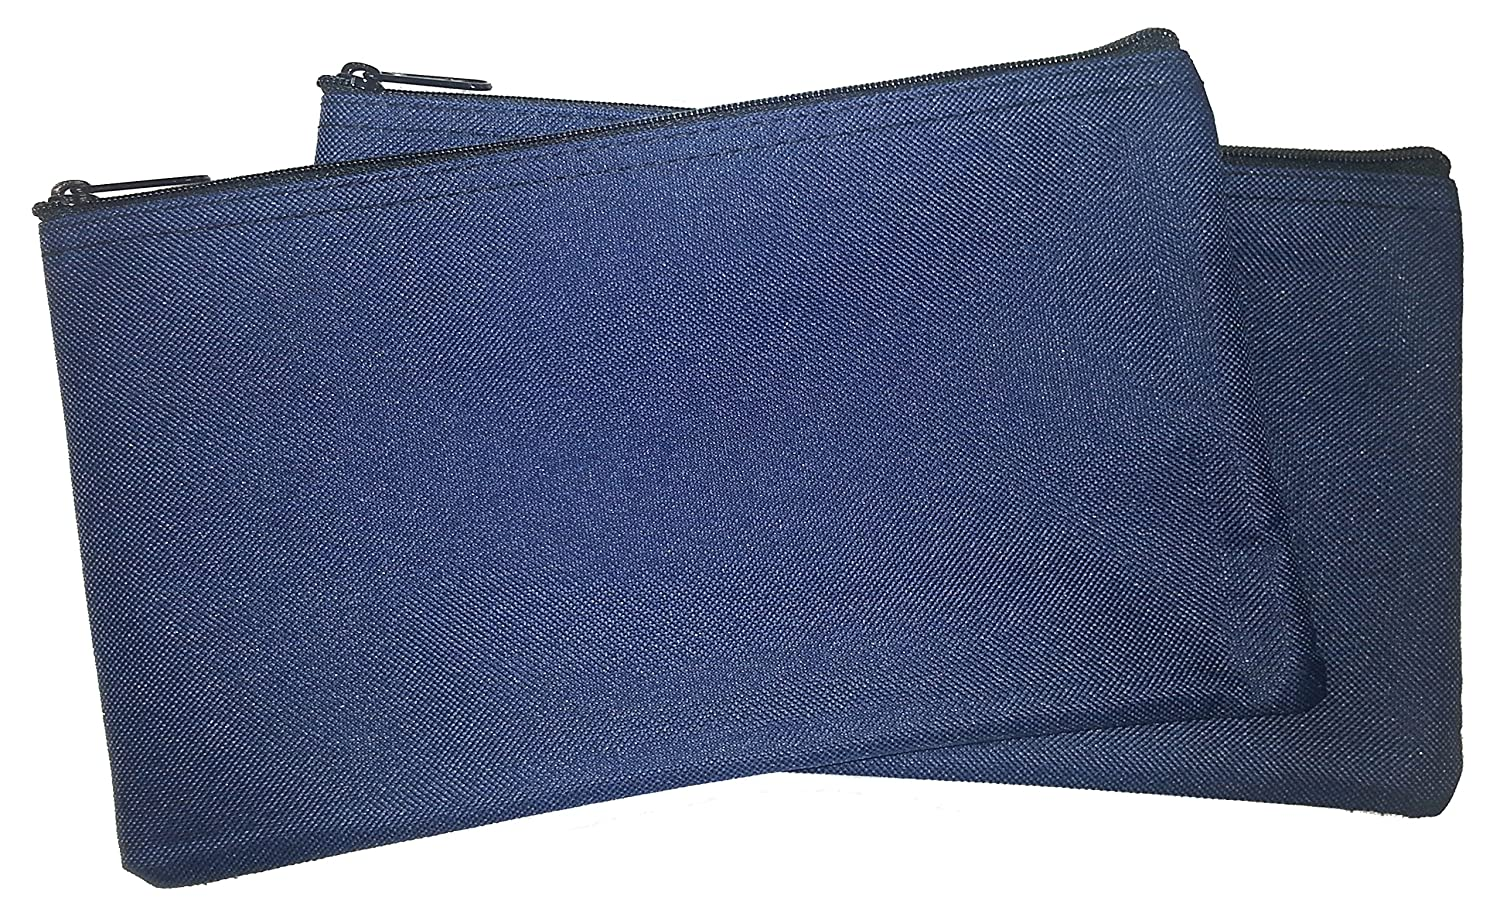 Zipper Bags Poly Cloth Value Package of 2 Bags Navy Blue Cardinal Bag Supplies 76161027